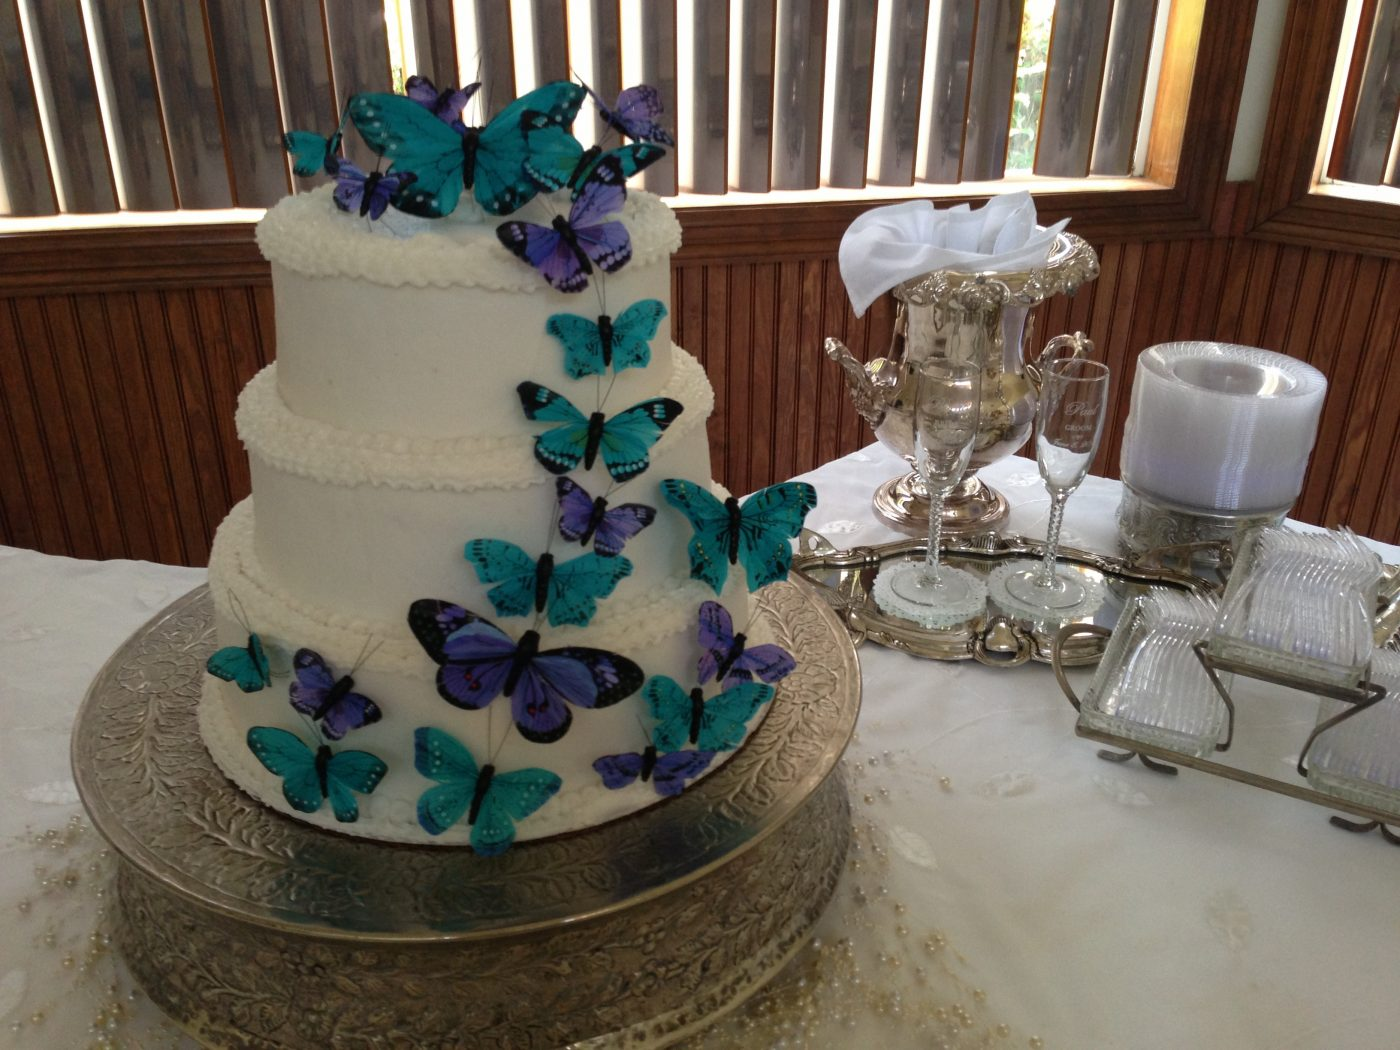 Wedding Cake at Gulf Shores Wedding Chapel